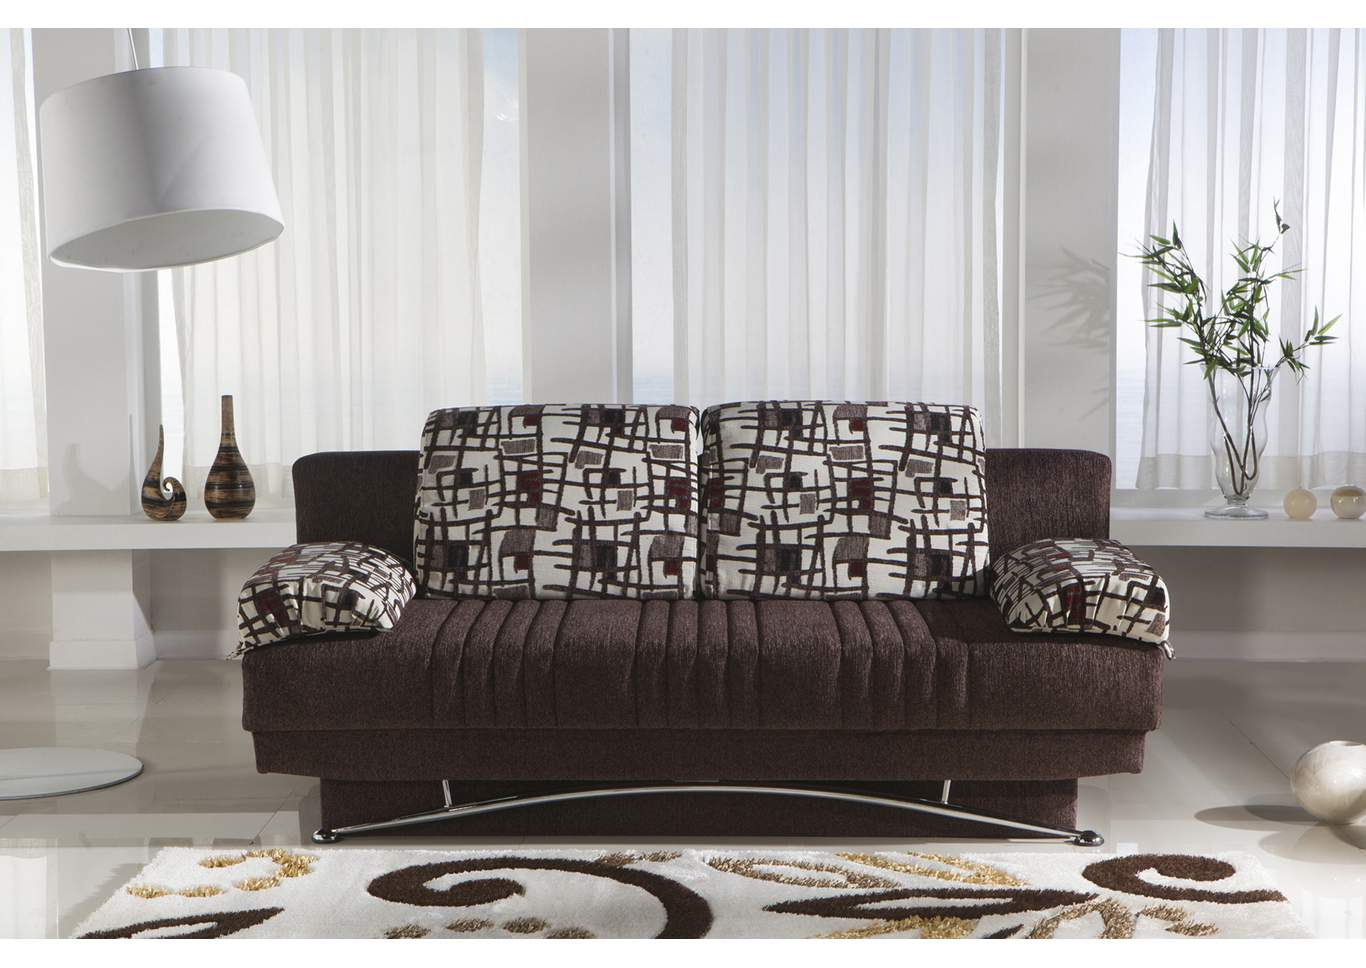 Fantasy Aristo Burgundy 3 Seat Sleeper Sofa,Hudson Furniture & Bedding